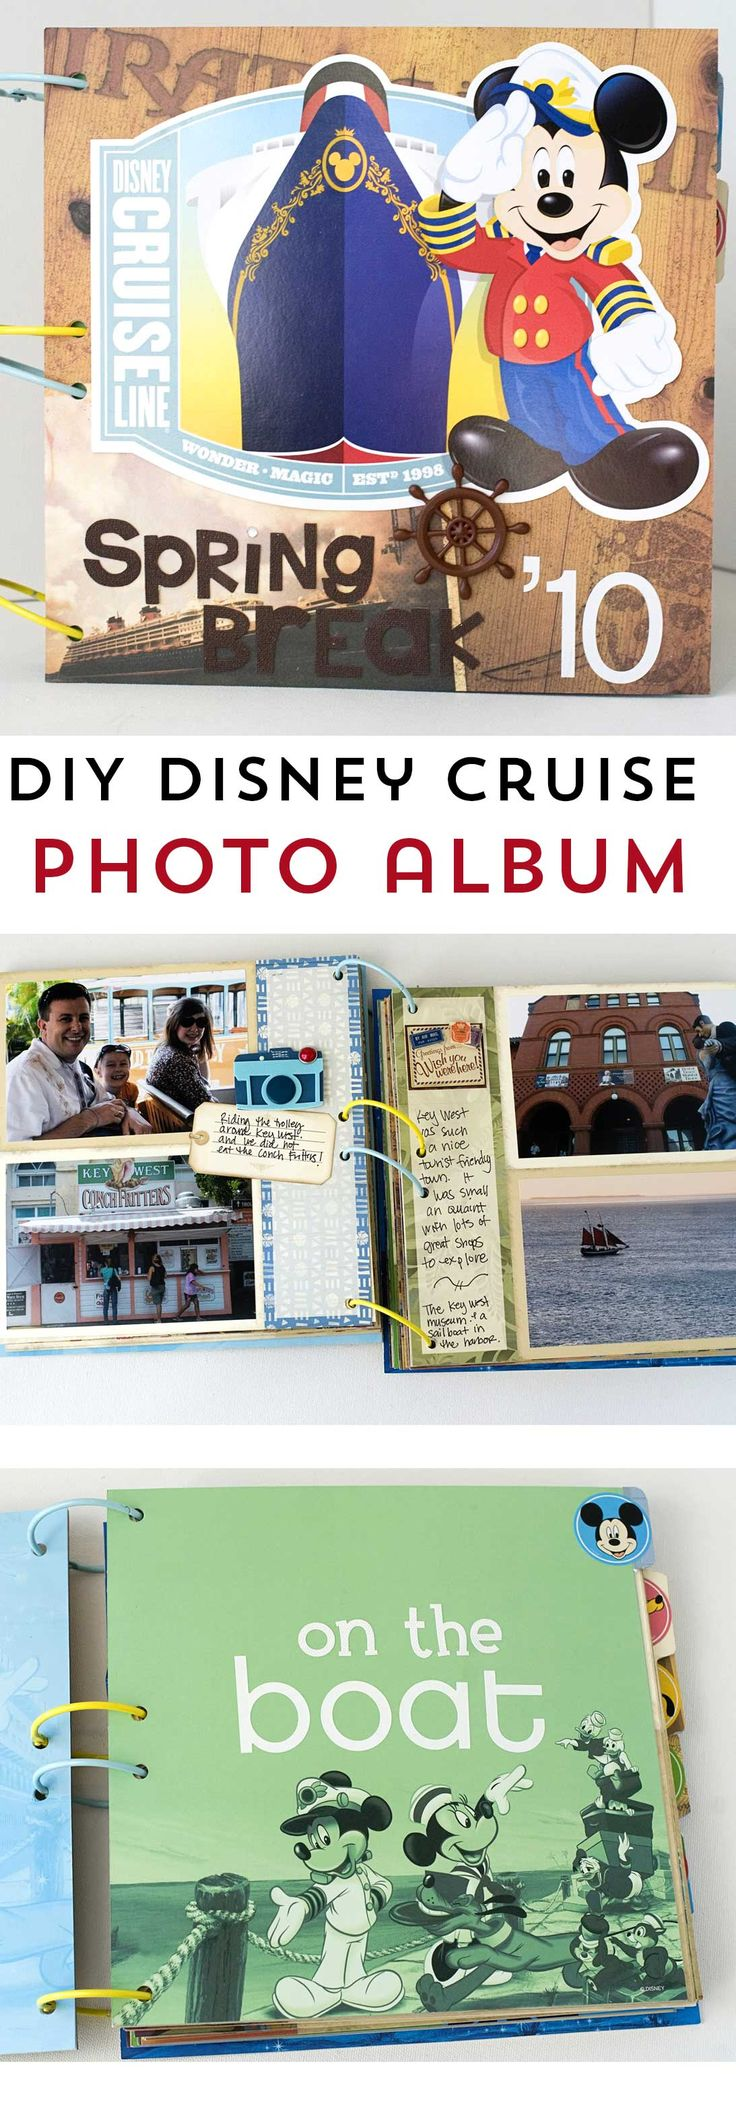 How to scrapbook disney vacation - 262 Best Images About Disney Diy Ideas Travel Tips On Pinterest Disney Polka Dot Chair And Disney Parks